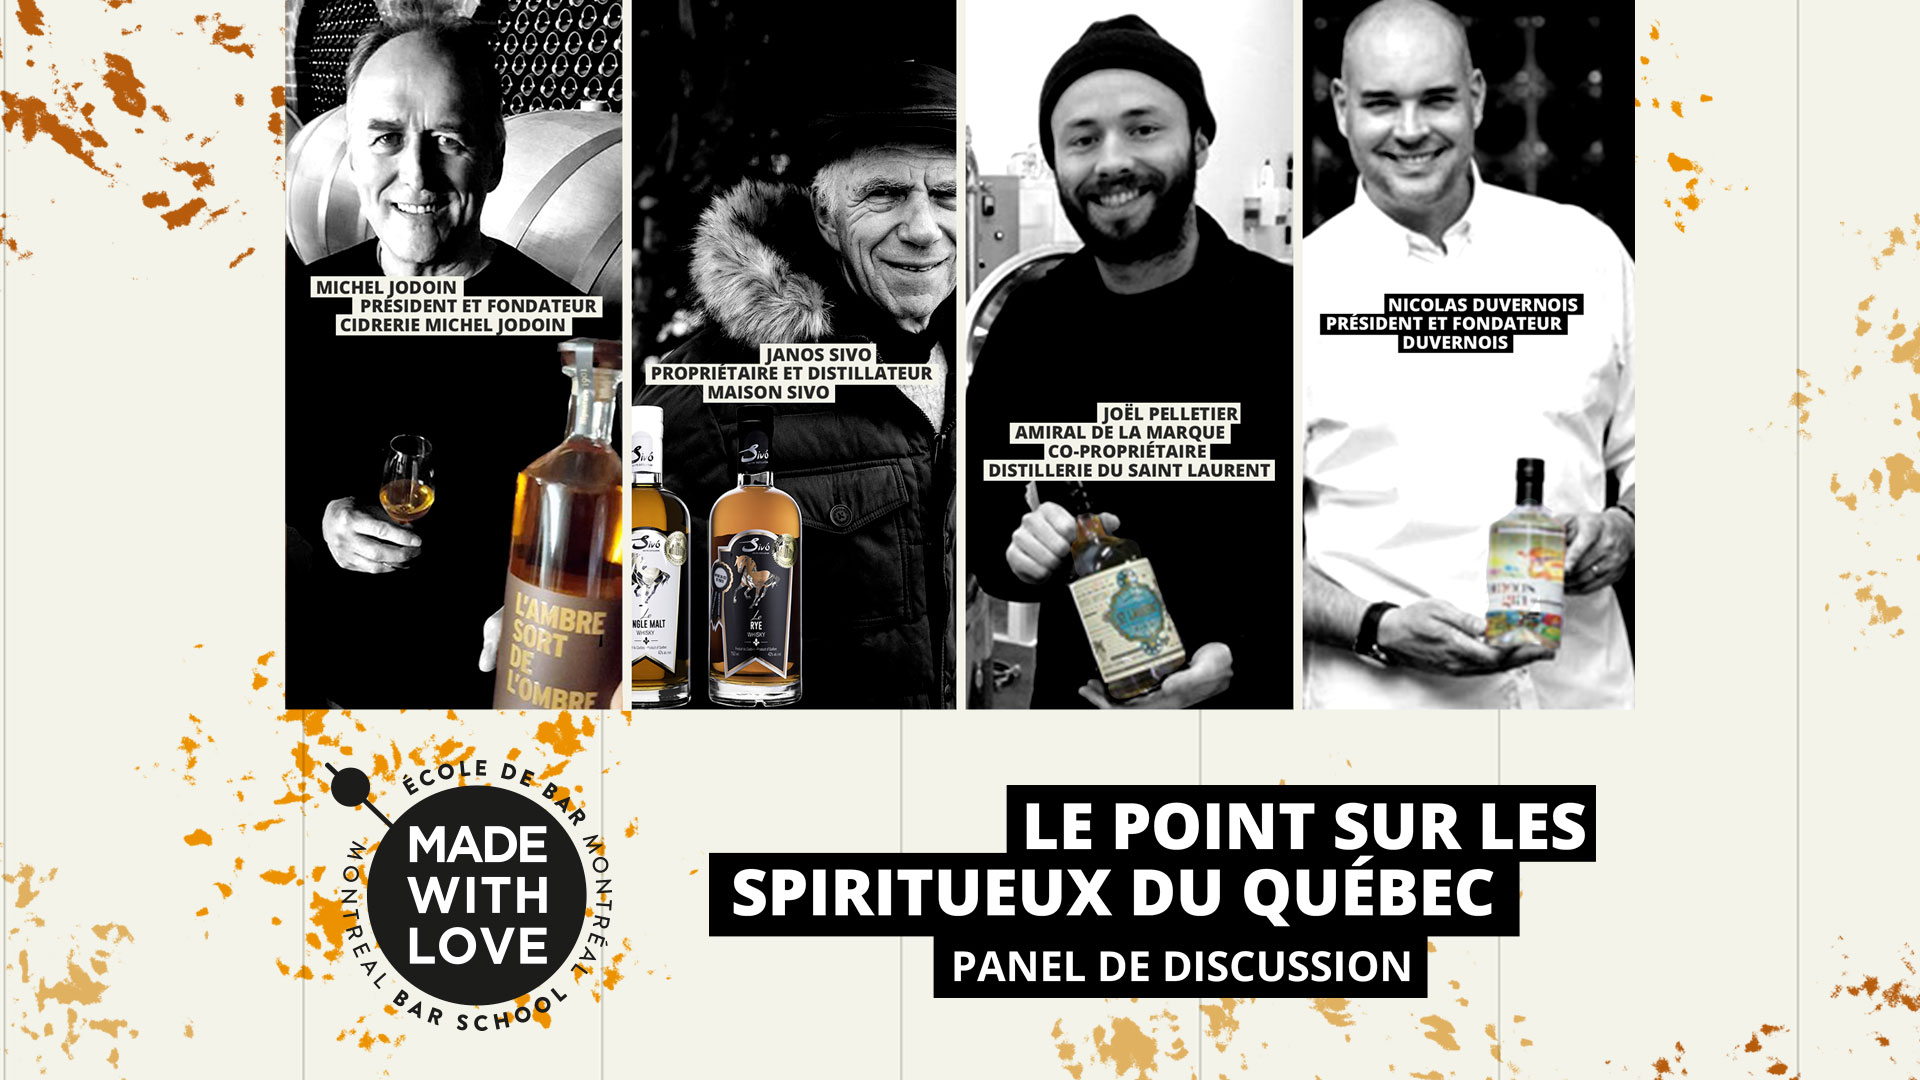 Le point sur les Spiritueux du Québec – Panel de discussion